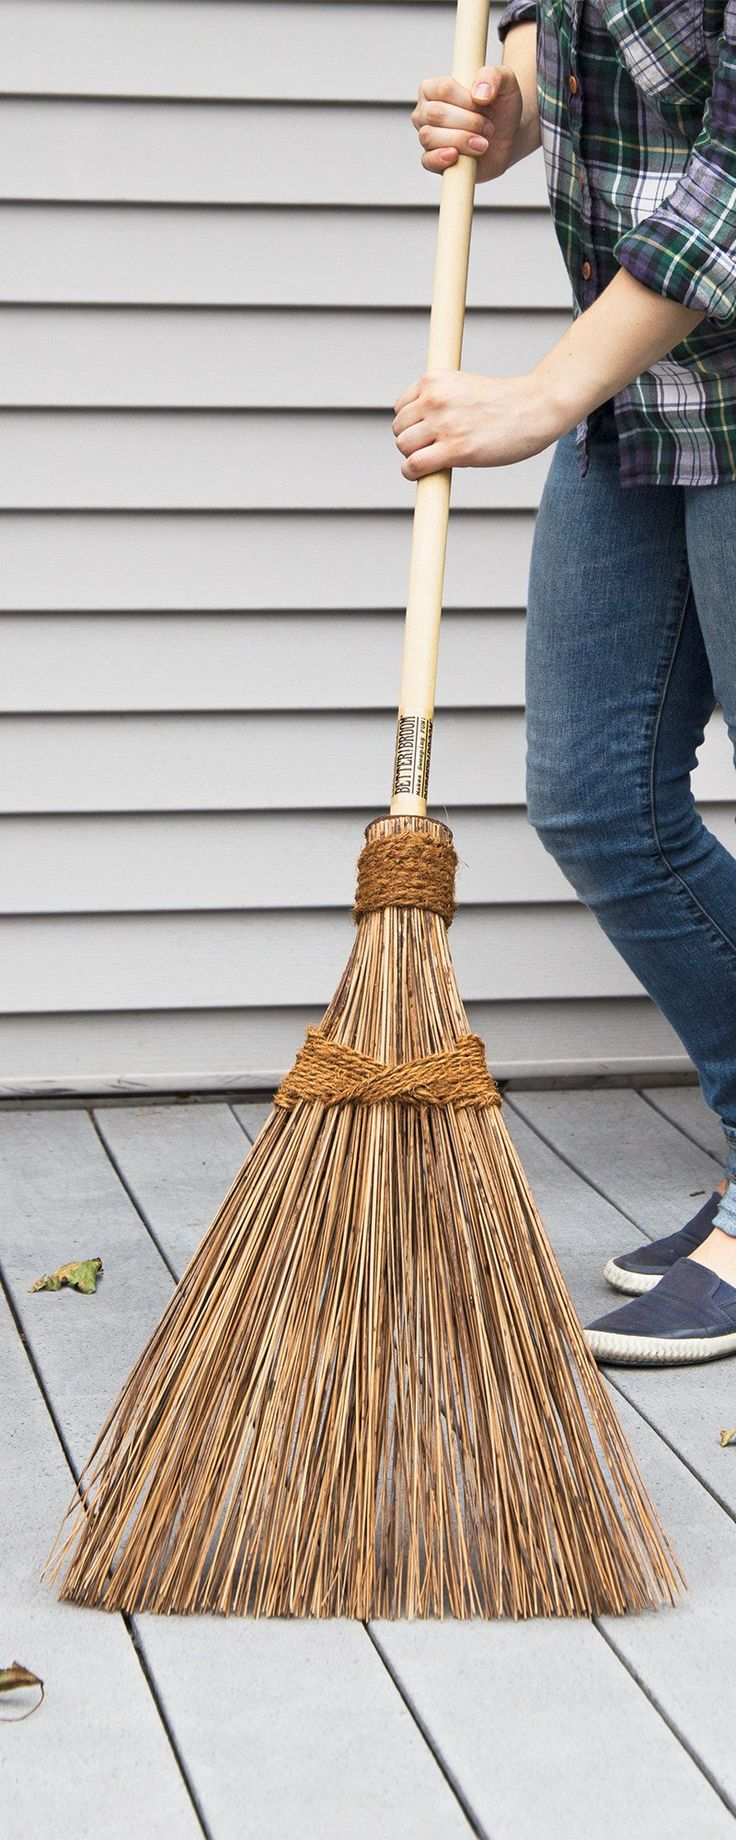 A sturdy sweeper straight from a coconut tree. The sturdy, lightweight broom can sweep indoors or out, from dirt to leaves and even light snow. It'll last for years.